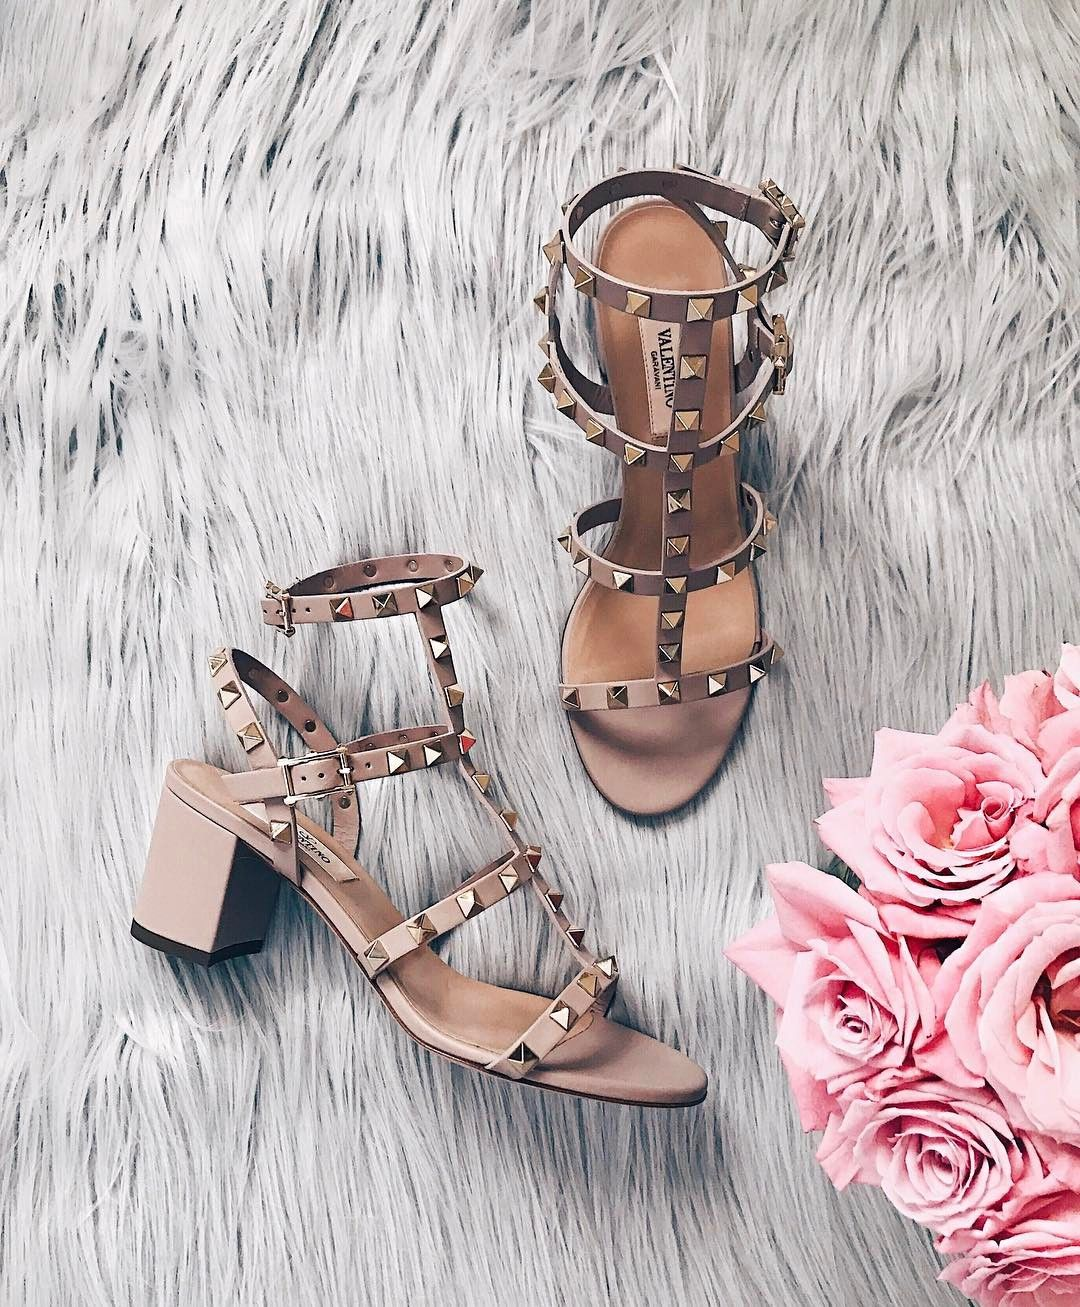 Valentino rockstud leather sandals available on nordstrom summer sandals boho wrap platform 2017 designer